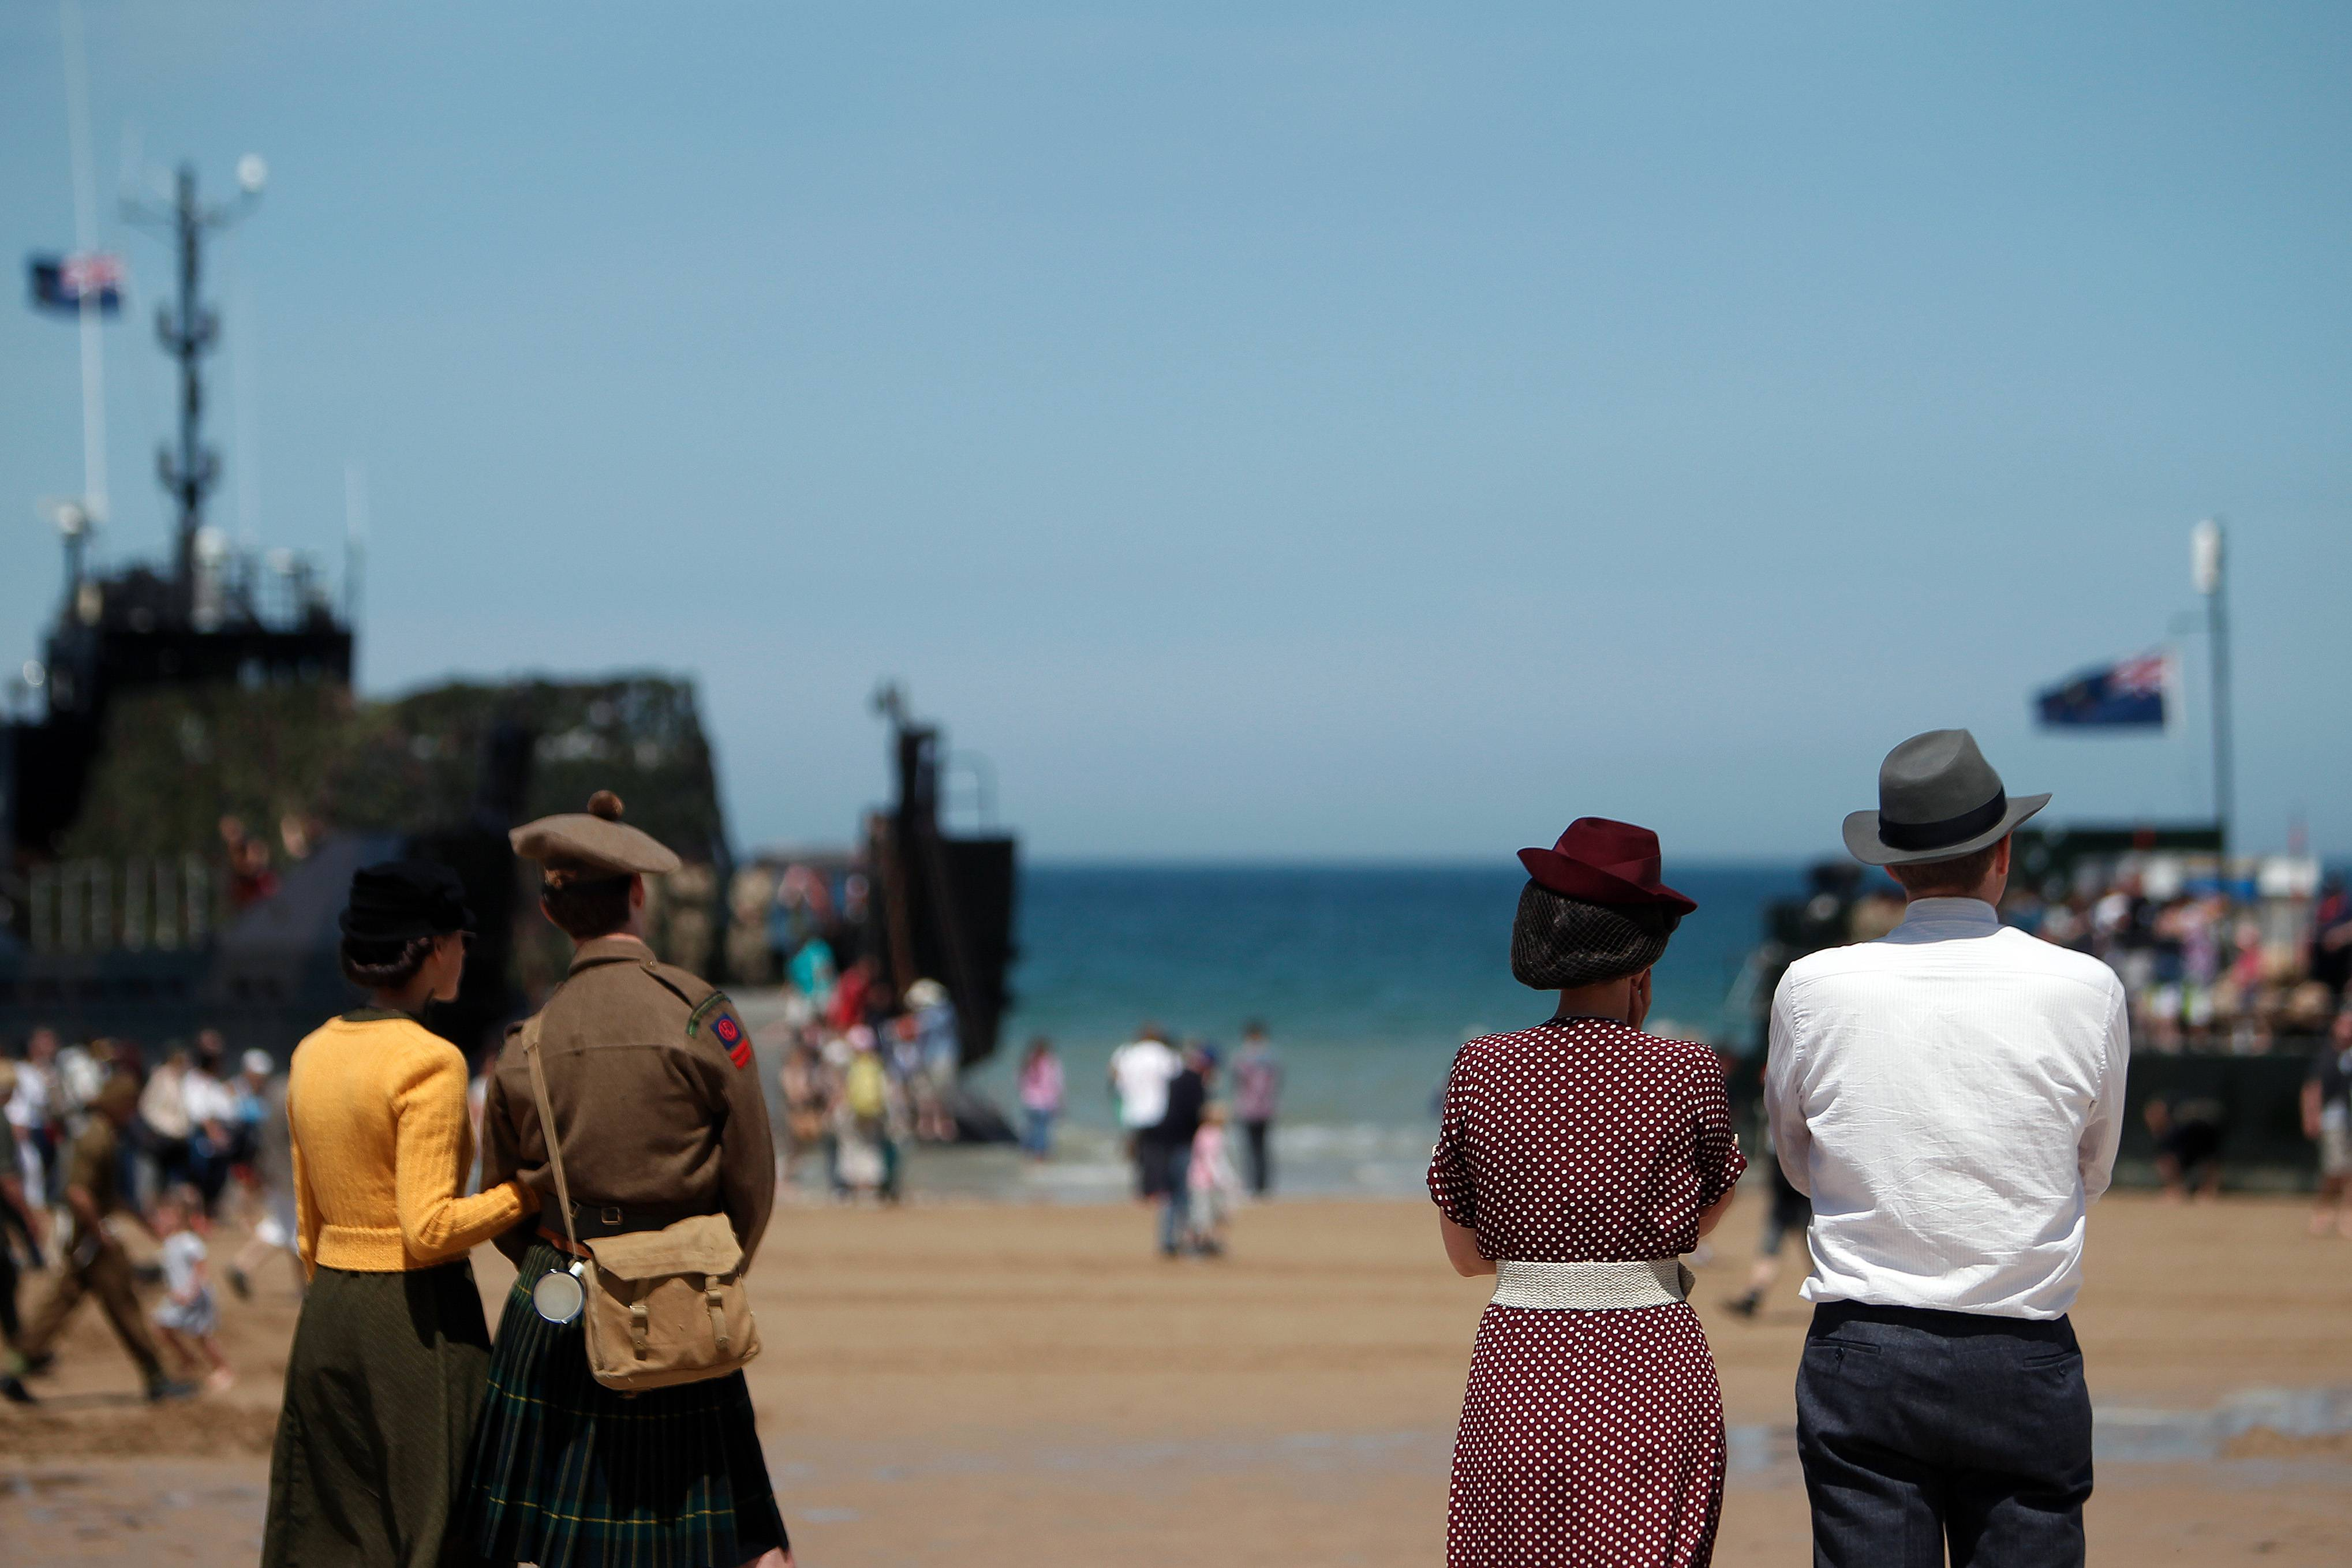 People wearing WWII style clothes look toward the sea, on the beach of Arromanches, western France, Friday June 6, 2014.